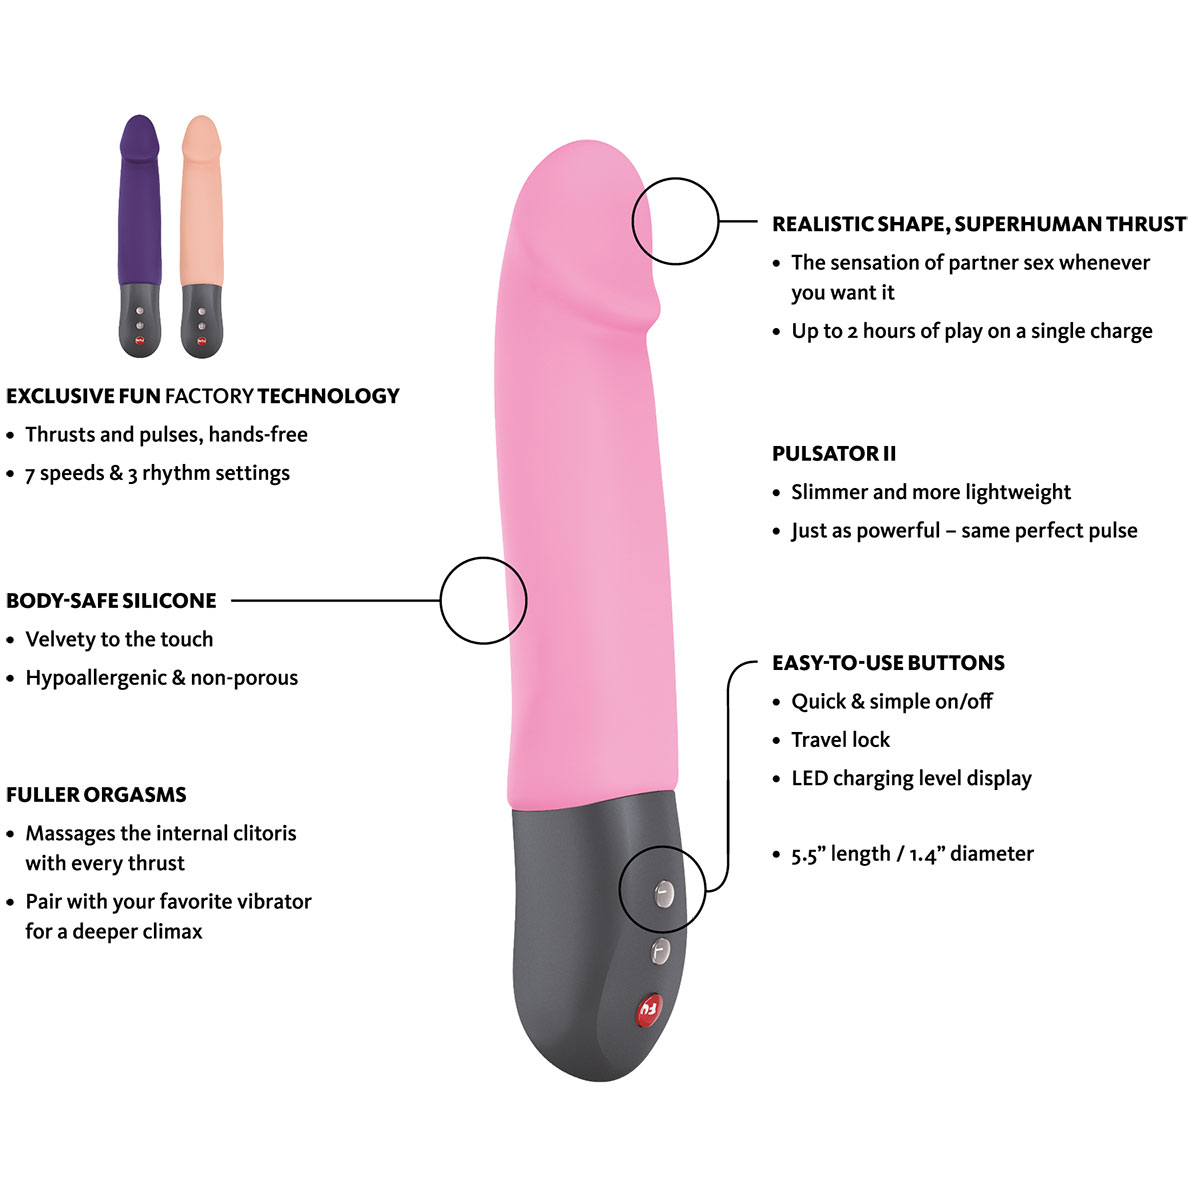 fun-factory-stronic-real-pulsator-sex-toy-features.jpg